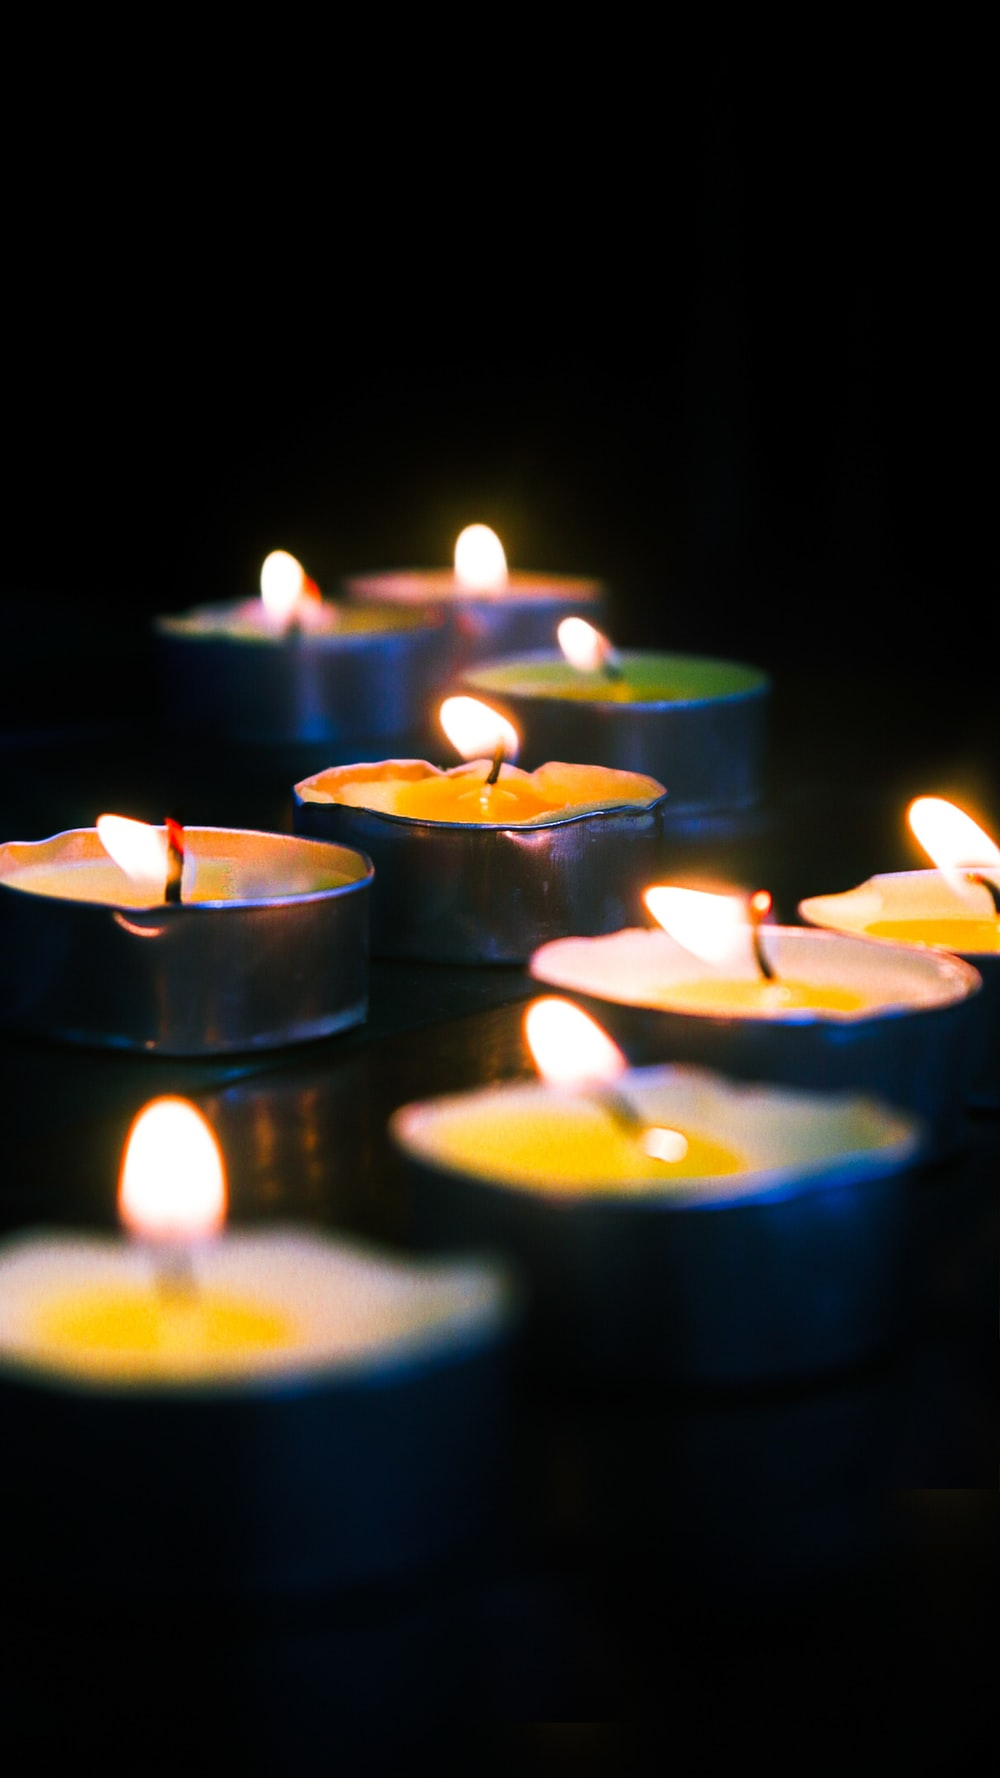 blue candles on black surface